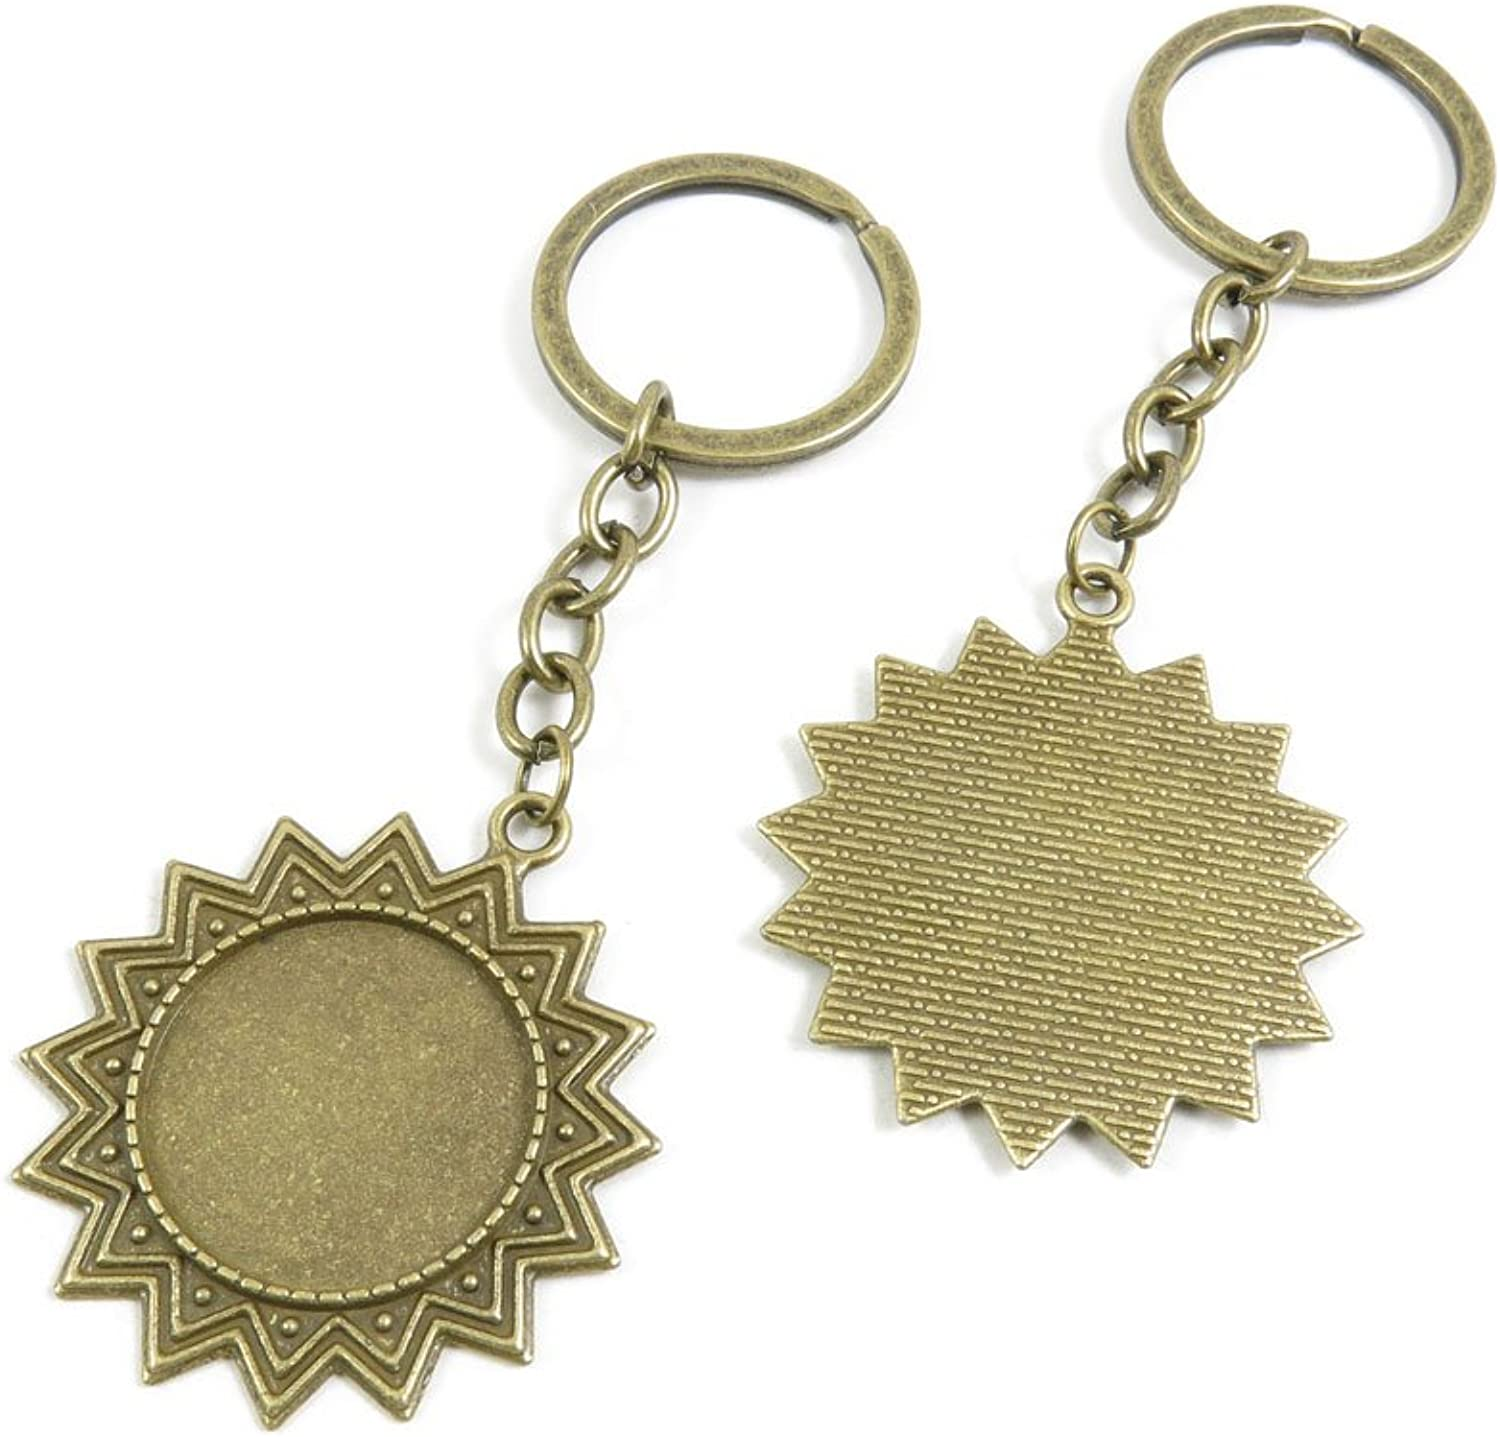 120 Pieces Fashion Jewelry Keyring Keychain Door Car Key Tag Ring Chain Supplier Supply Wholesale Bulk Lots H4LJ1 Sun Round Cabochon Frame Setting 25mm